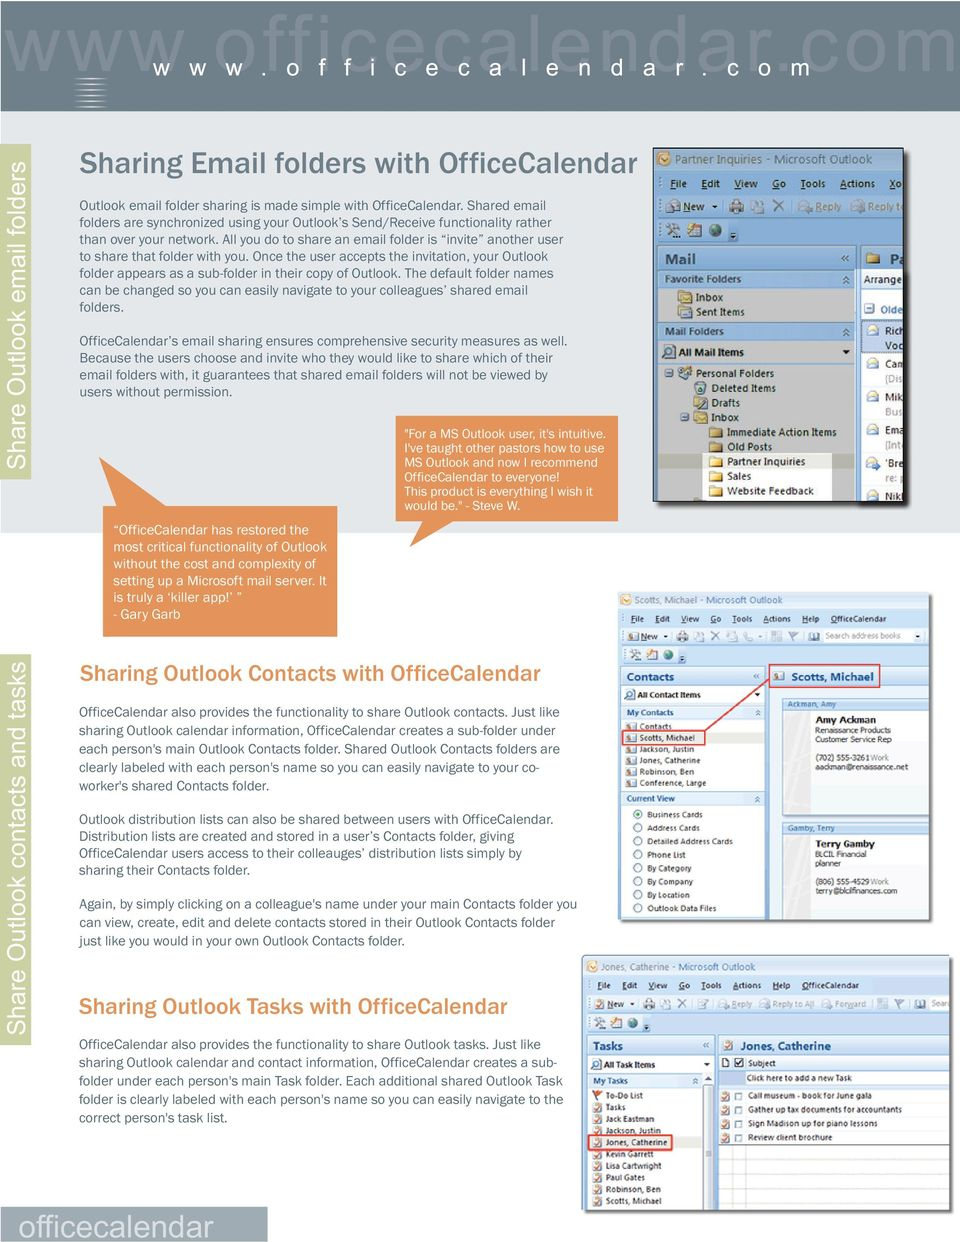 All you do to share an email folder is invite another user to share that folder with you. Once the user accepts the invitation, your Outlook folder appears as a sub-folder in their copy of Outlook.